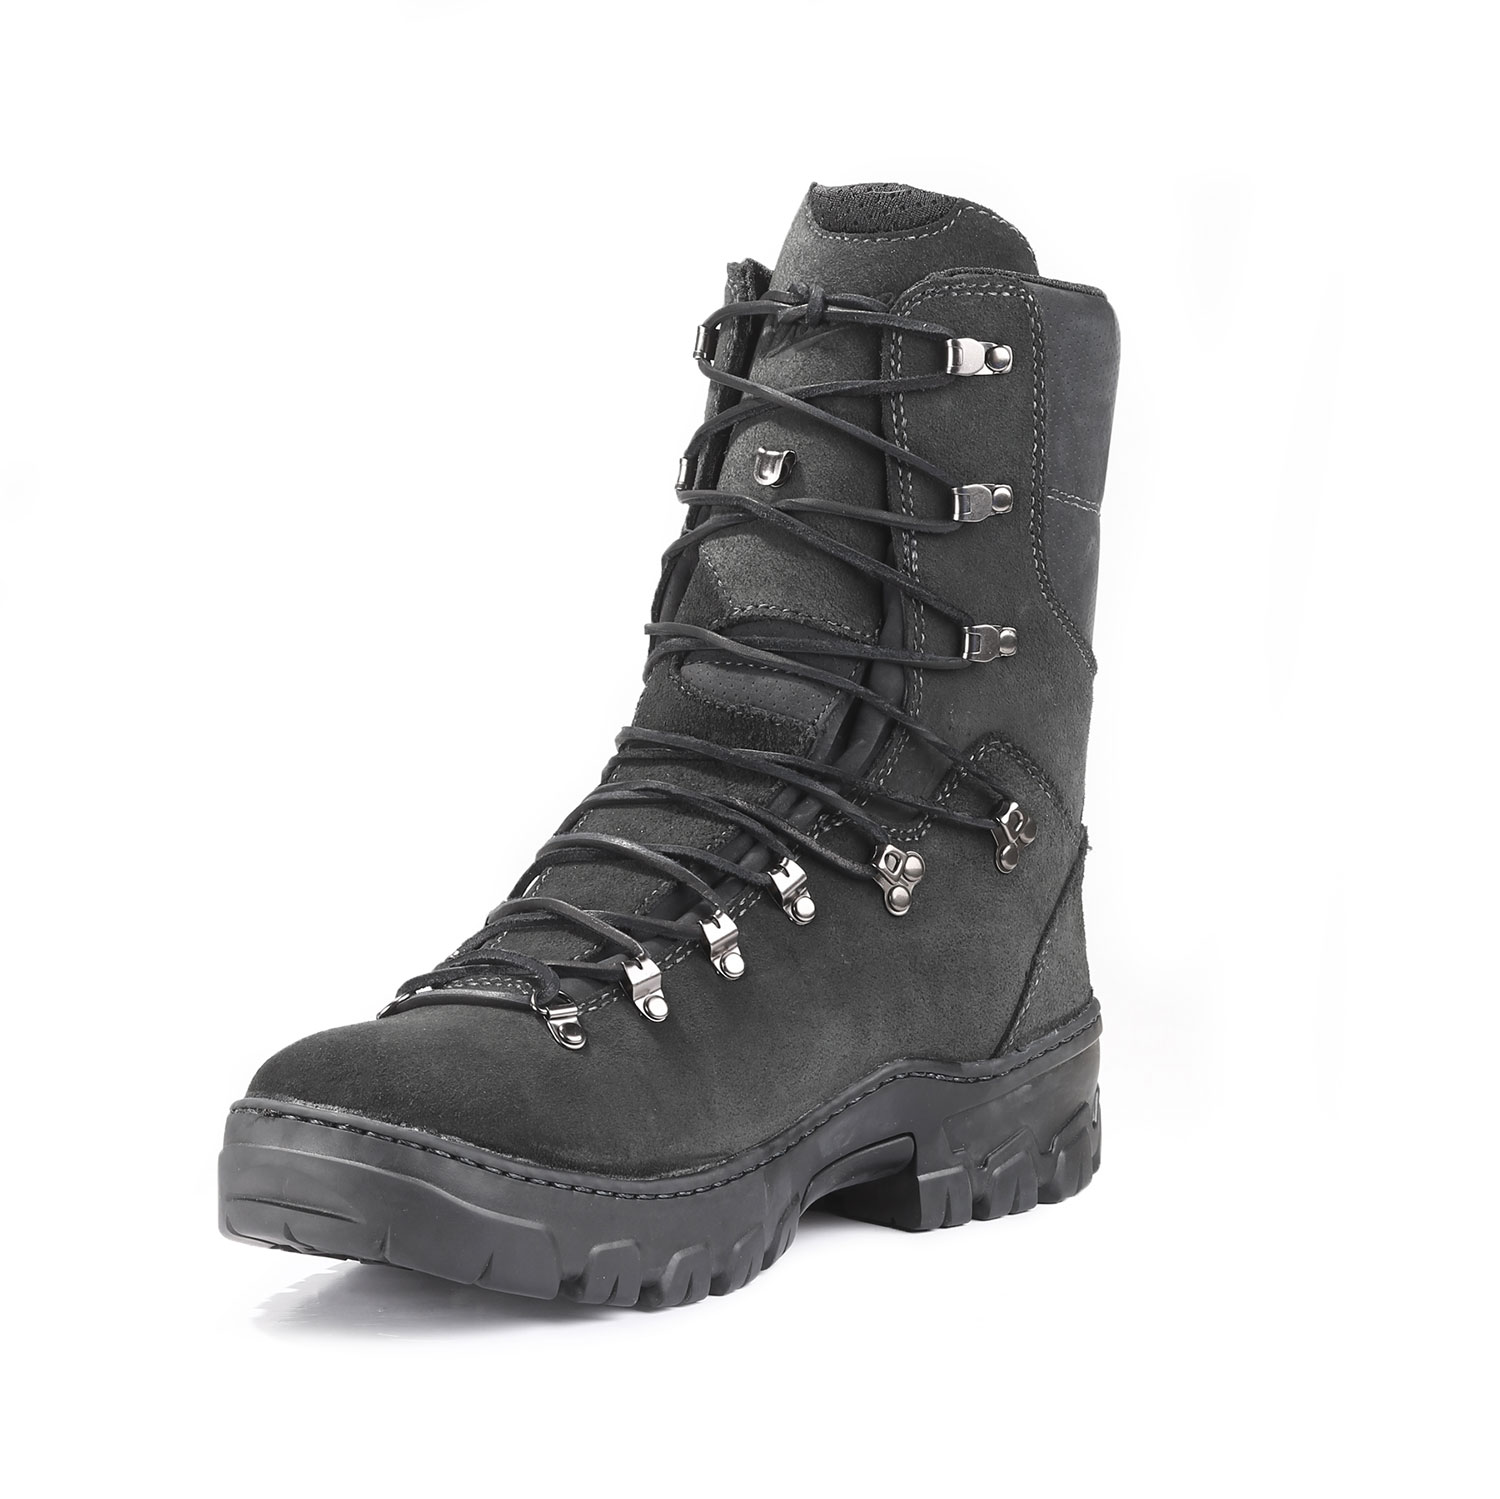 Danner Wildland Tactical Firefighter Boot